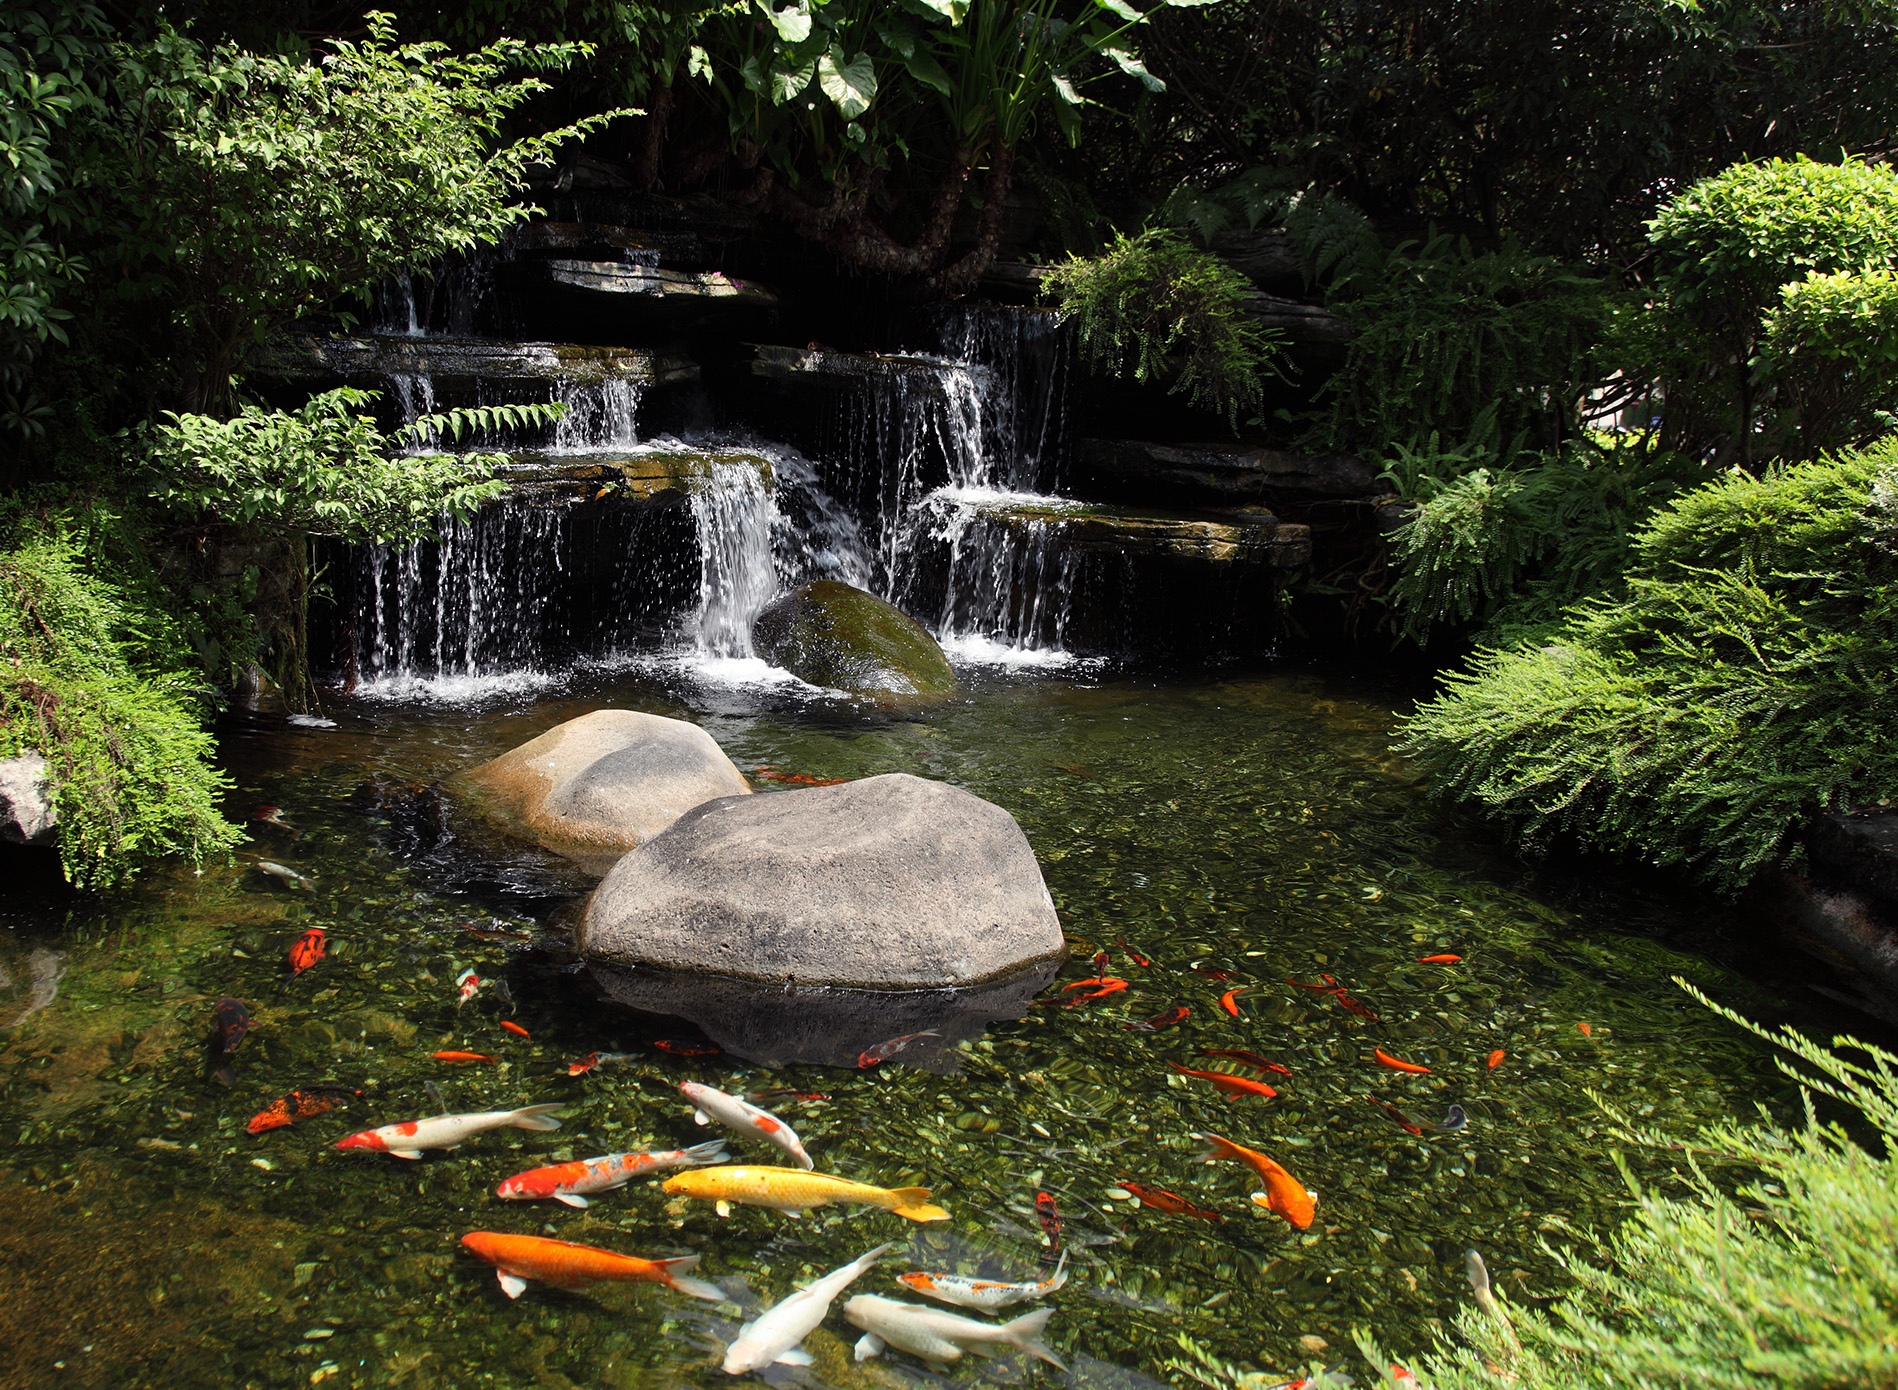 20 koi pond ideas to create a unique garden i do myself for Koi fish pond ideas